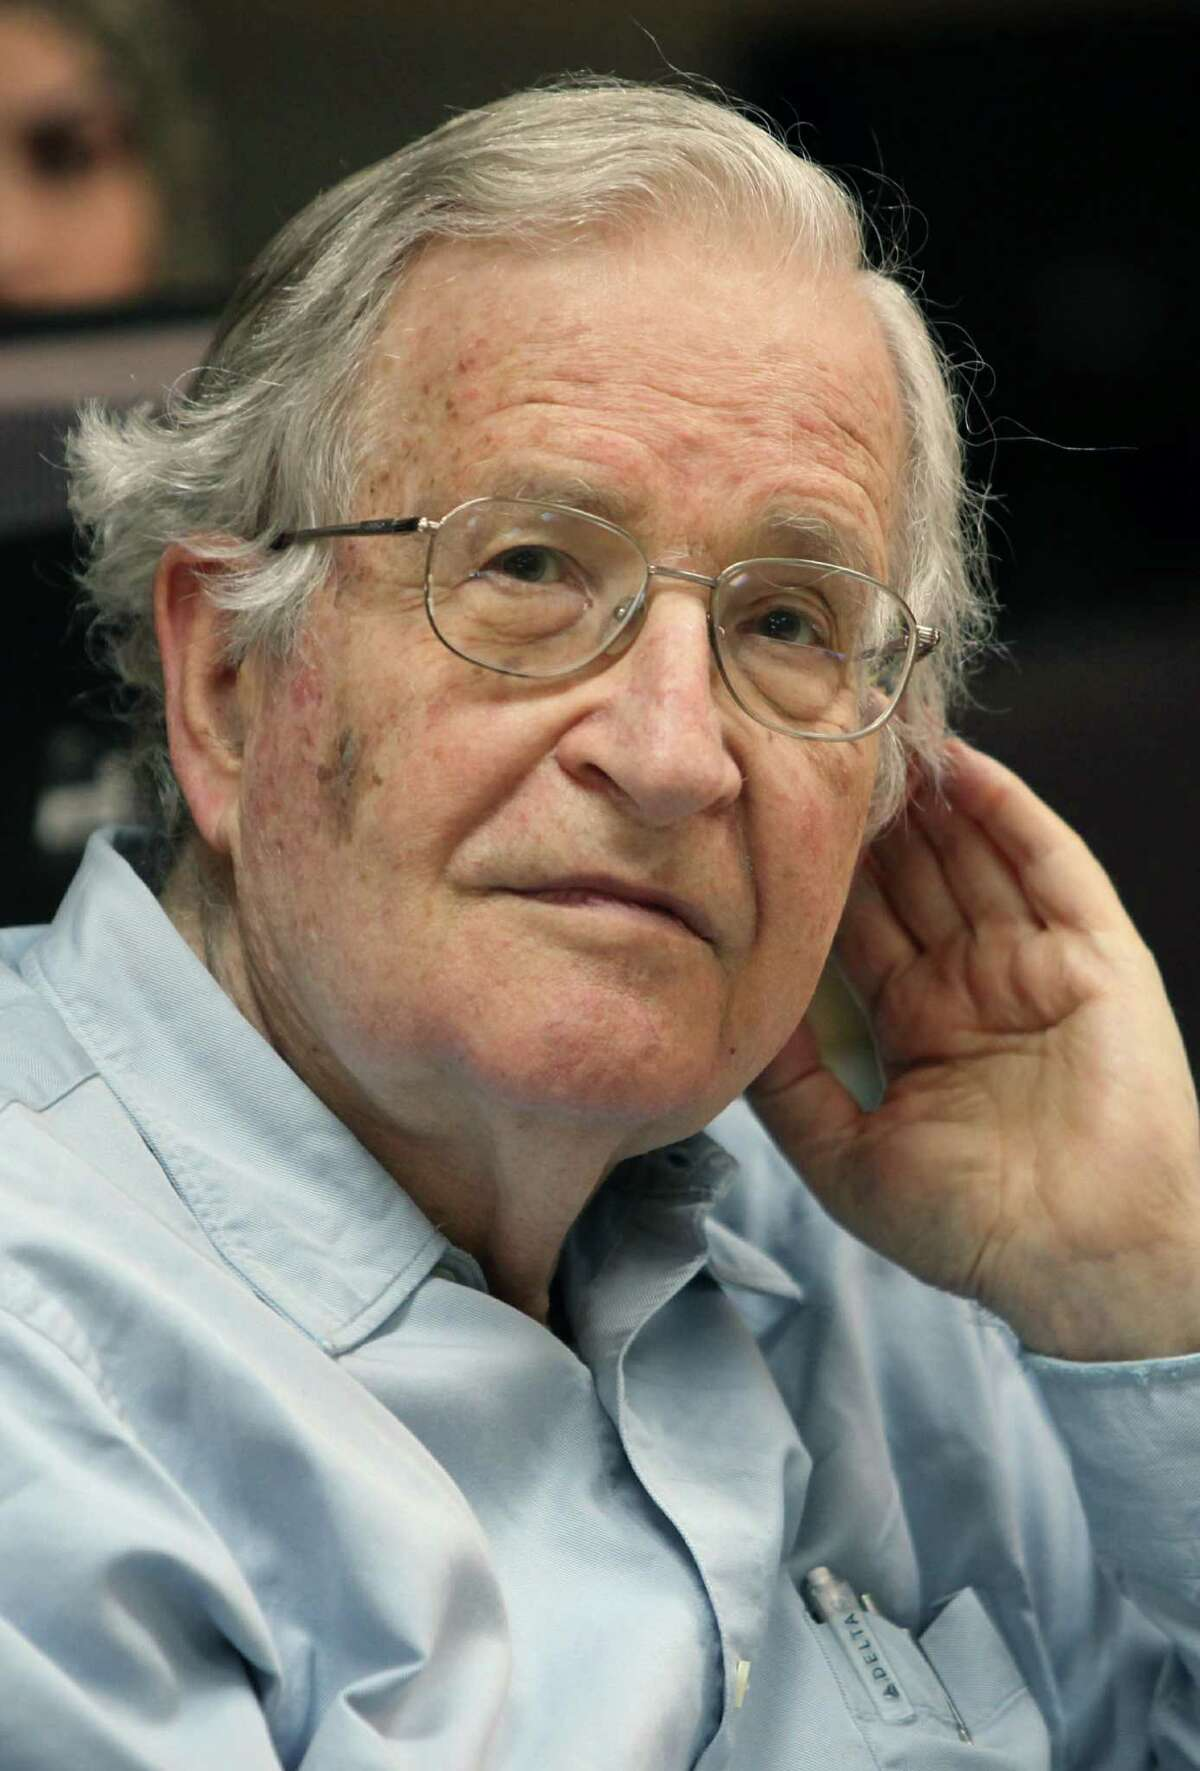 Noam Chomsky, one of the most cited scholars in modern history, is among those confirmed to speak at the all-virtual Albany Book Festival set for Sept. 10-24.